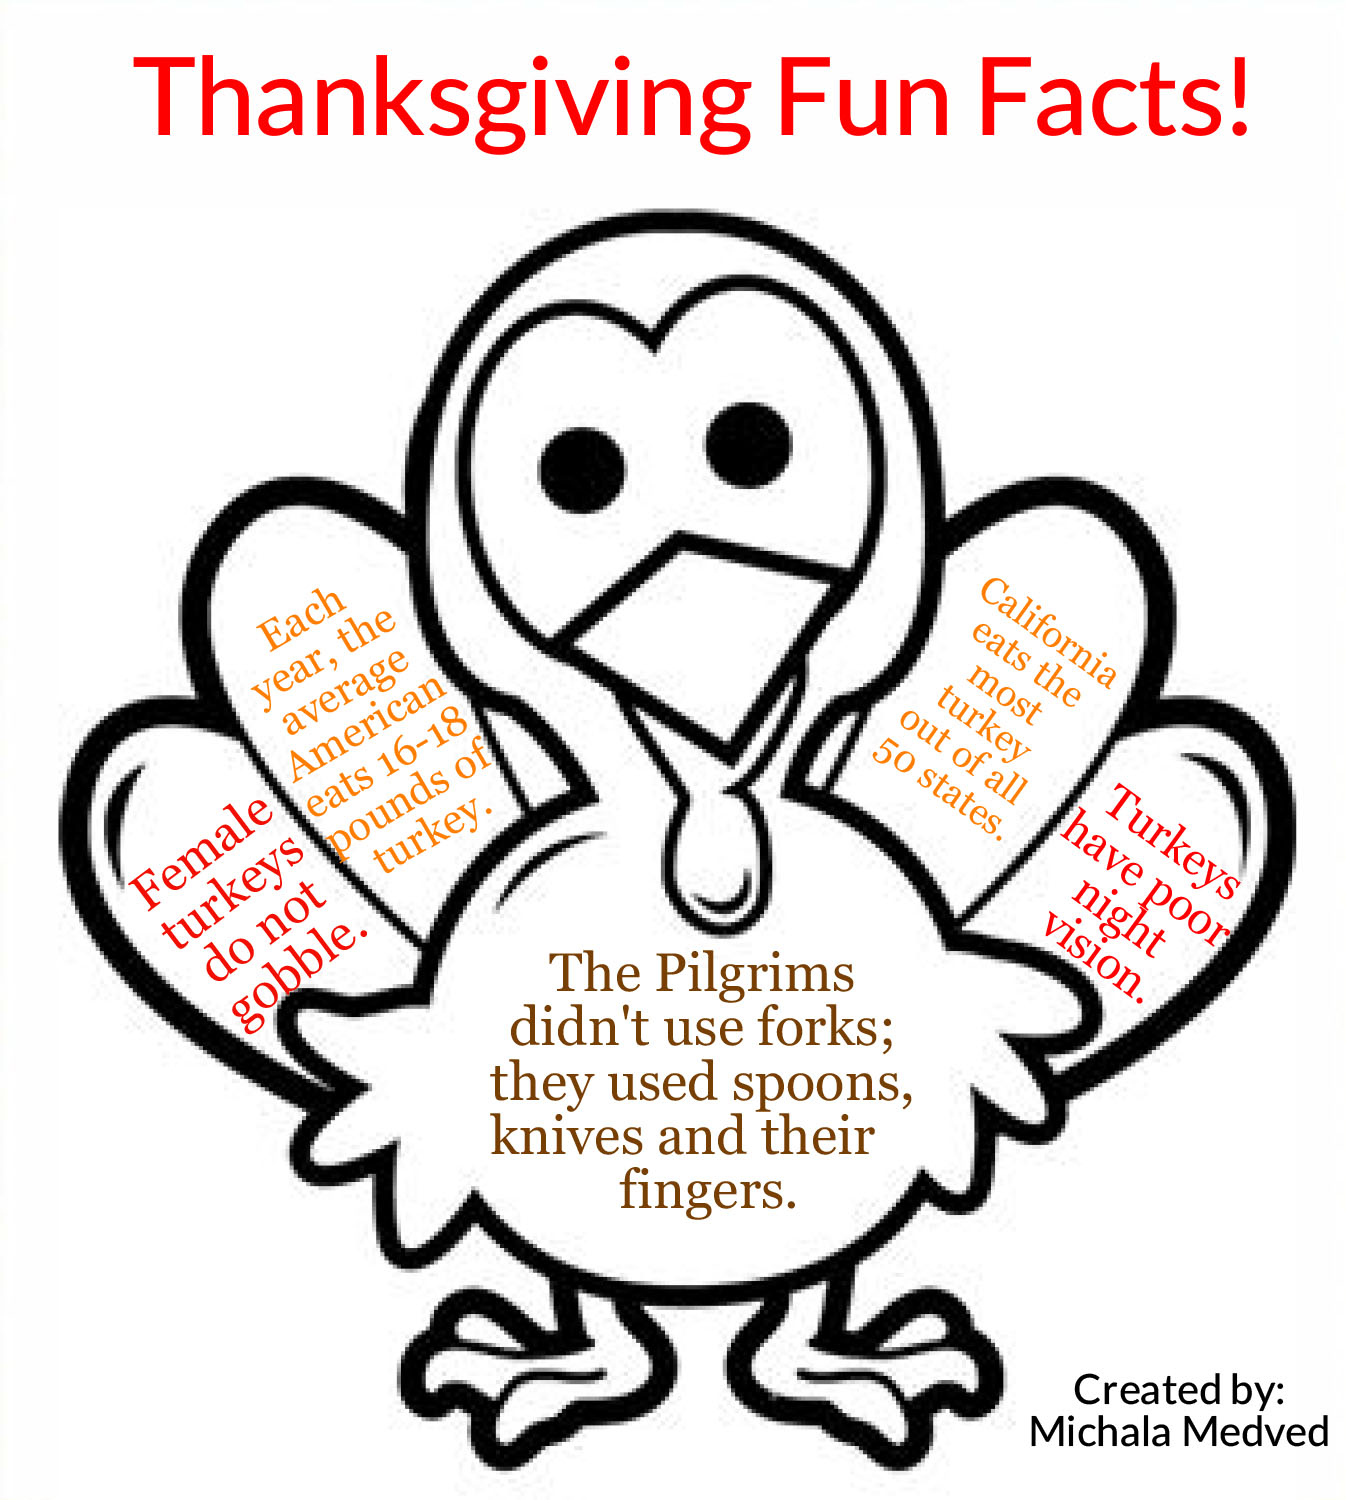 ThanksgivingFunfacts